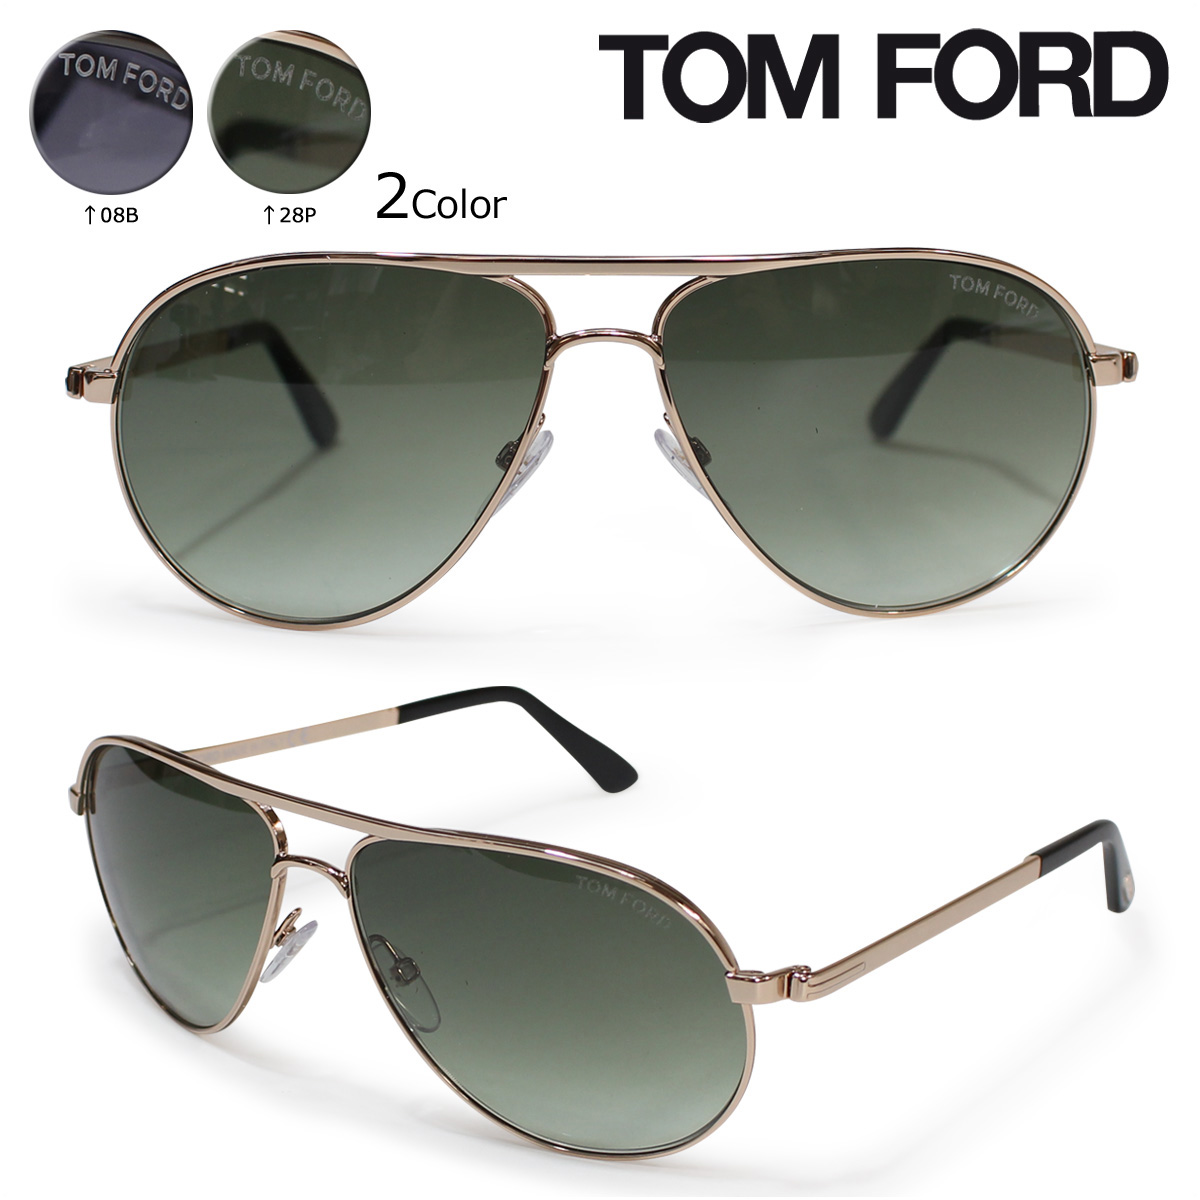 b3fb7ba1bb ... on the lens from the temple is decorated in Tom Ford features.  Furnished with hand-made in Italy by Marcolin eyewear Center even as  popular as good.